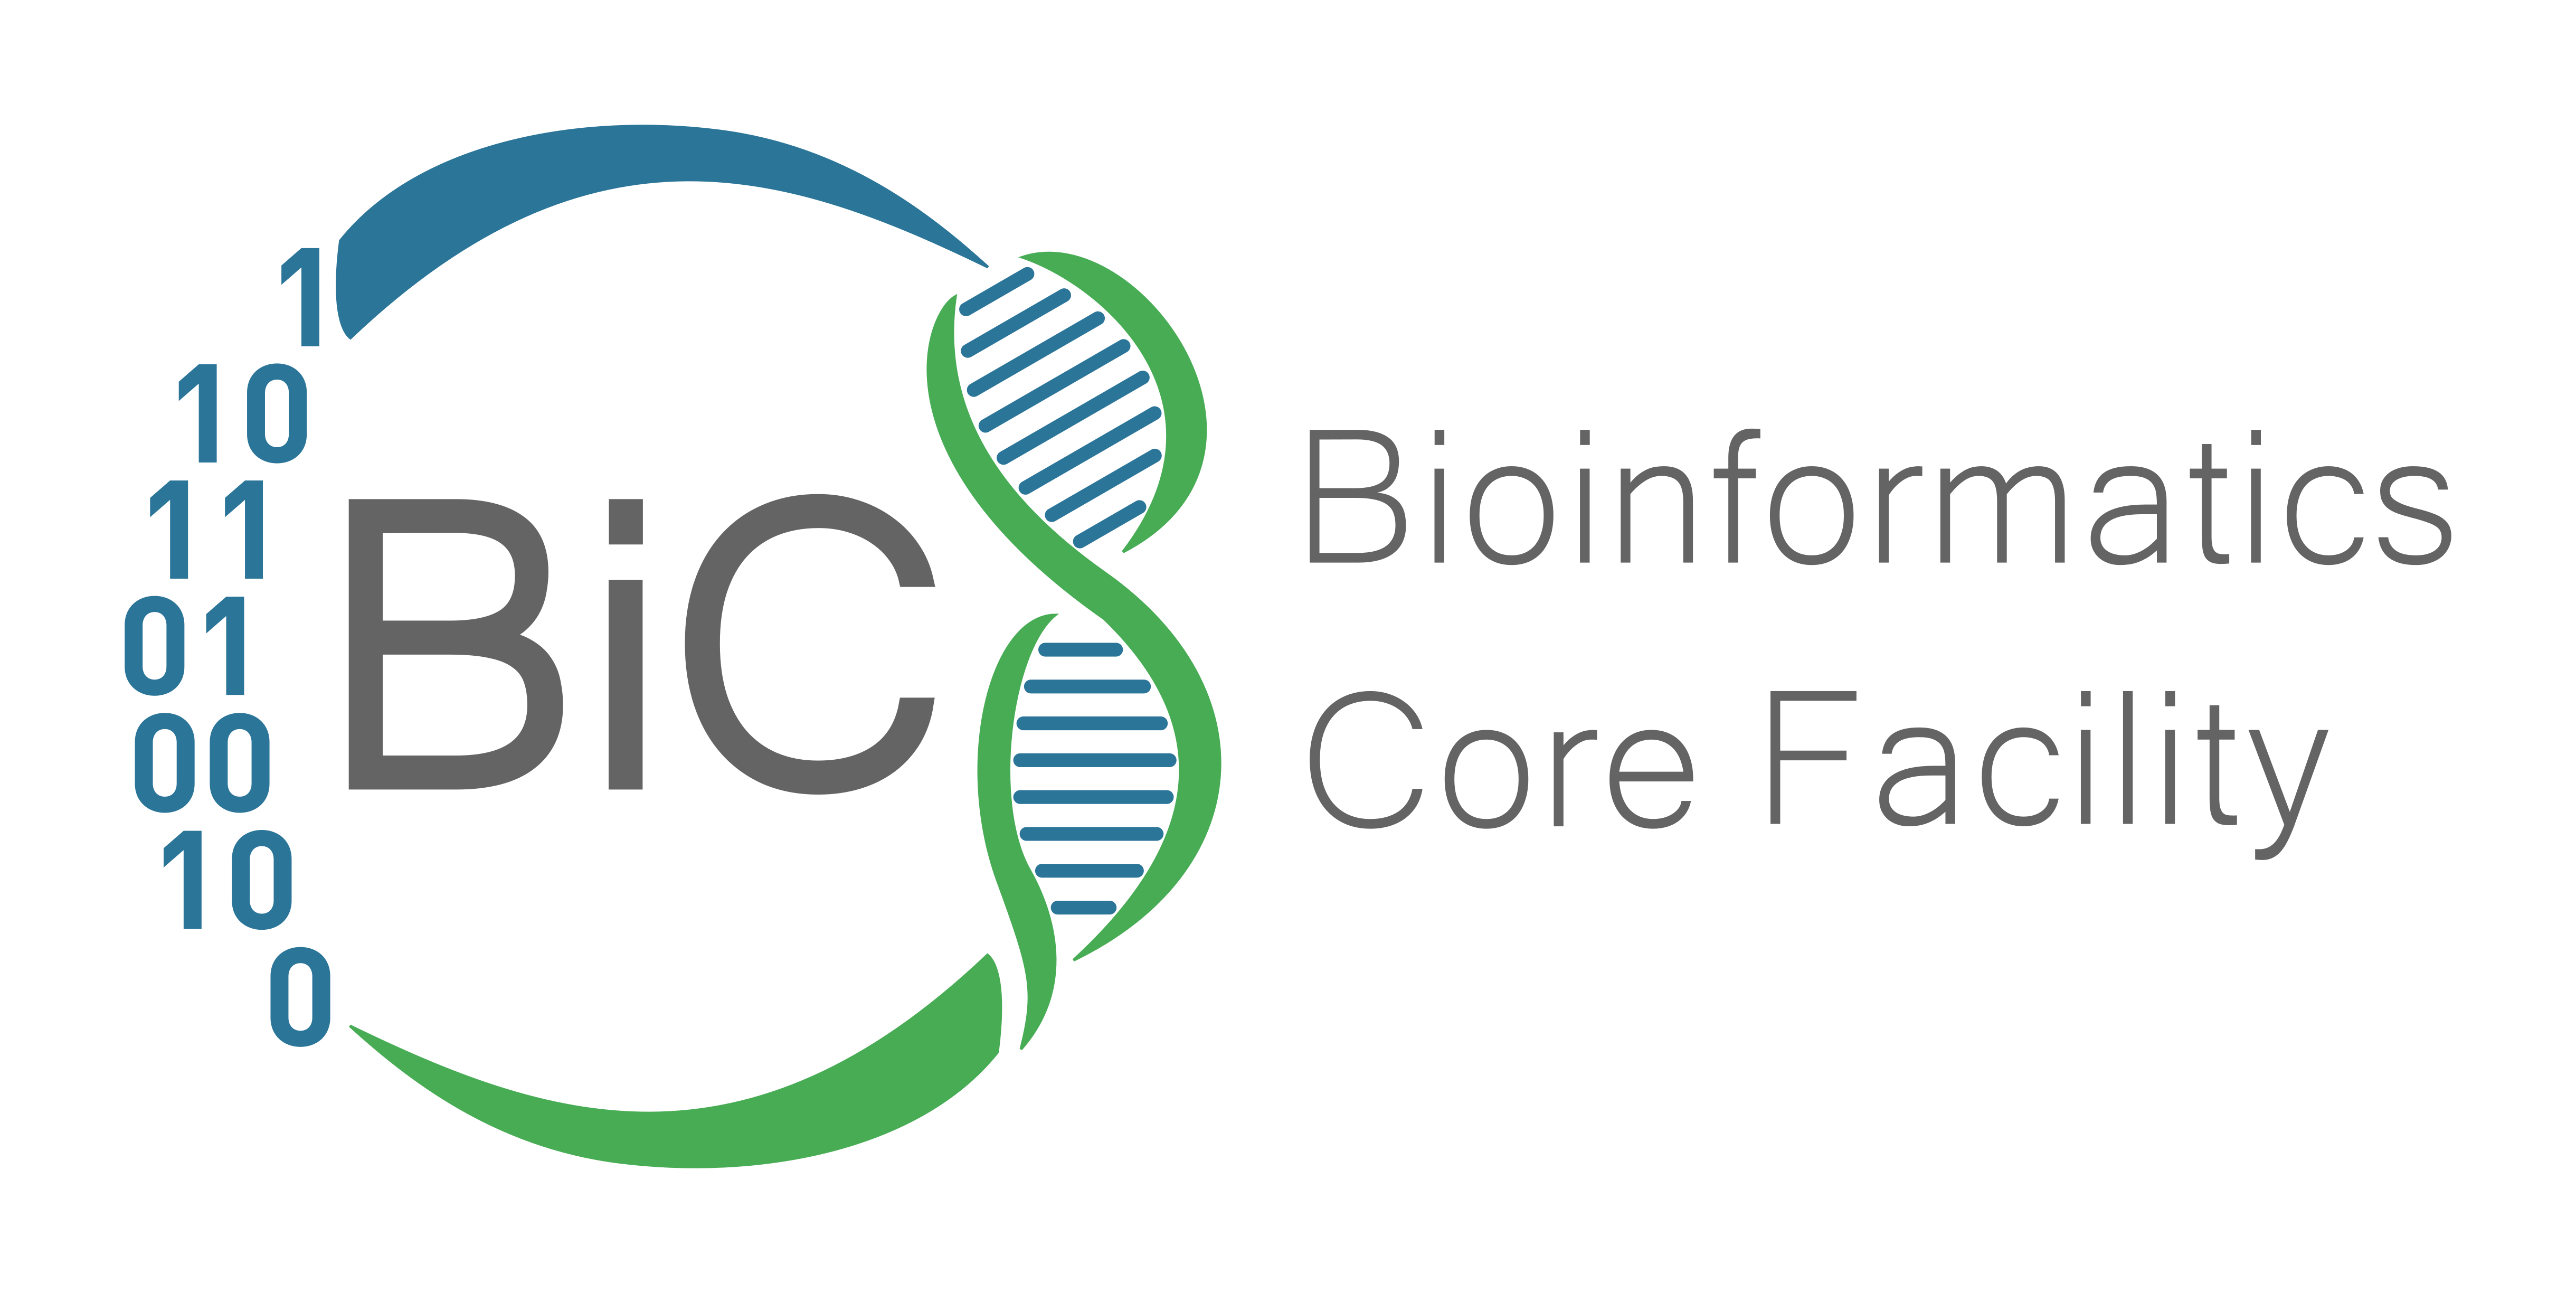 Bioinformatics Core Facility